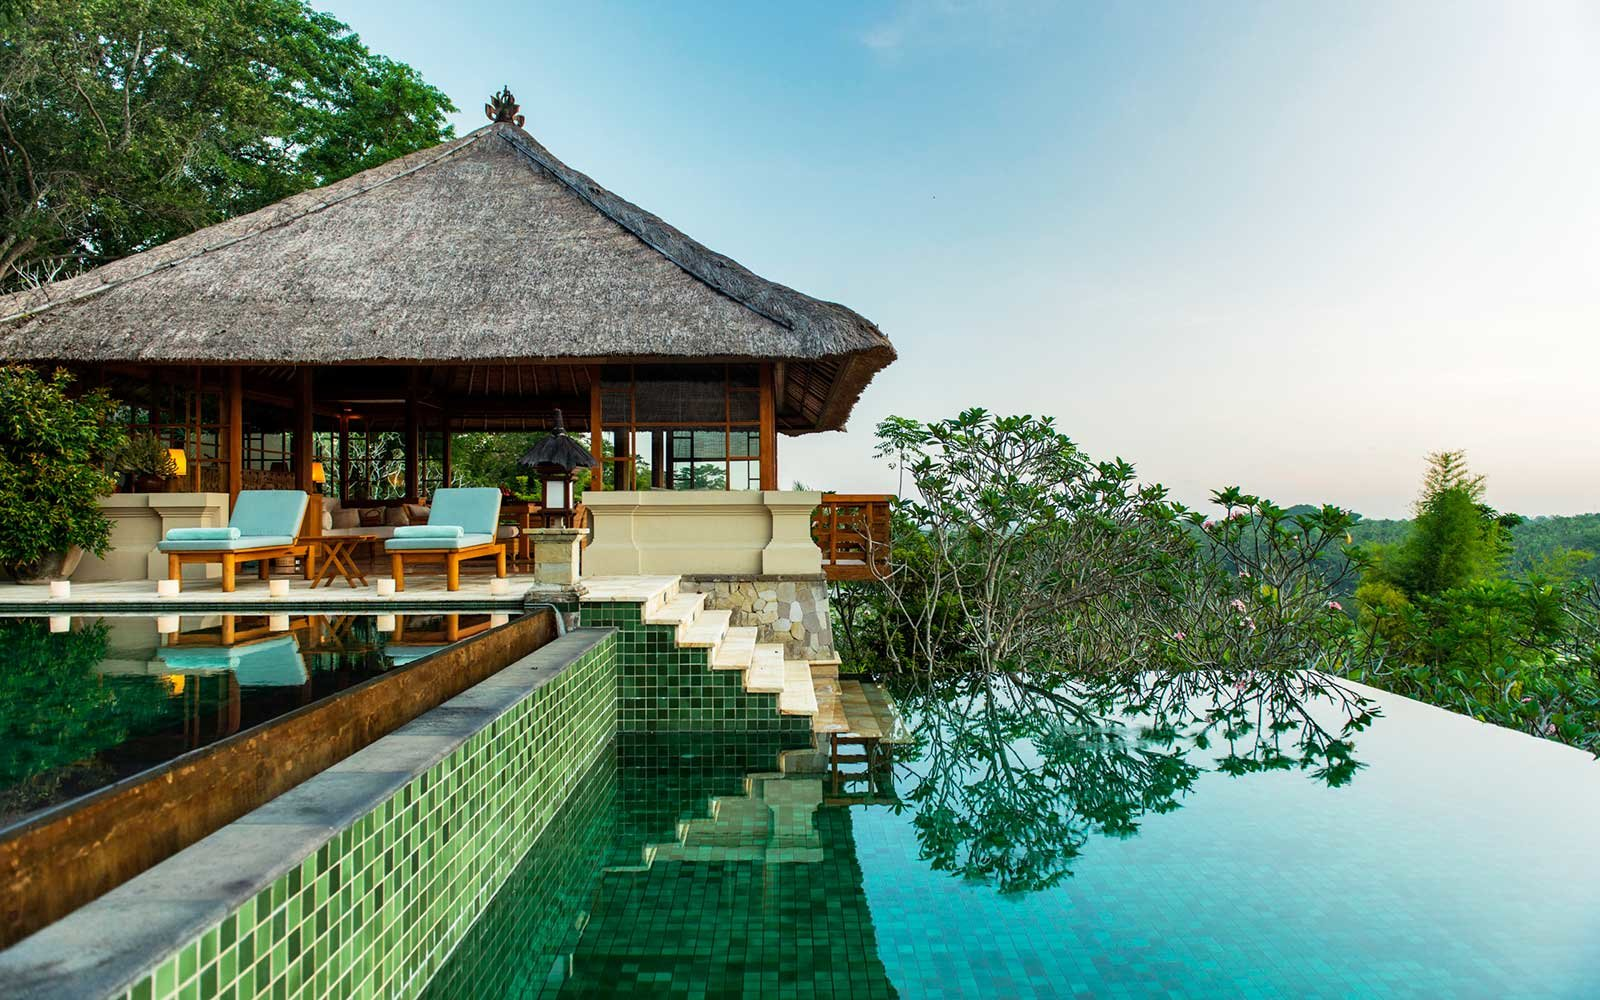 Bungalow L Form The 2017 World's Best Resort Hotels In Indonesia | Travel